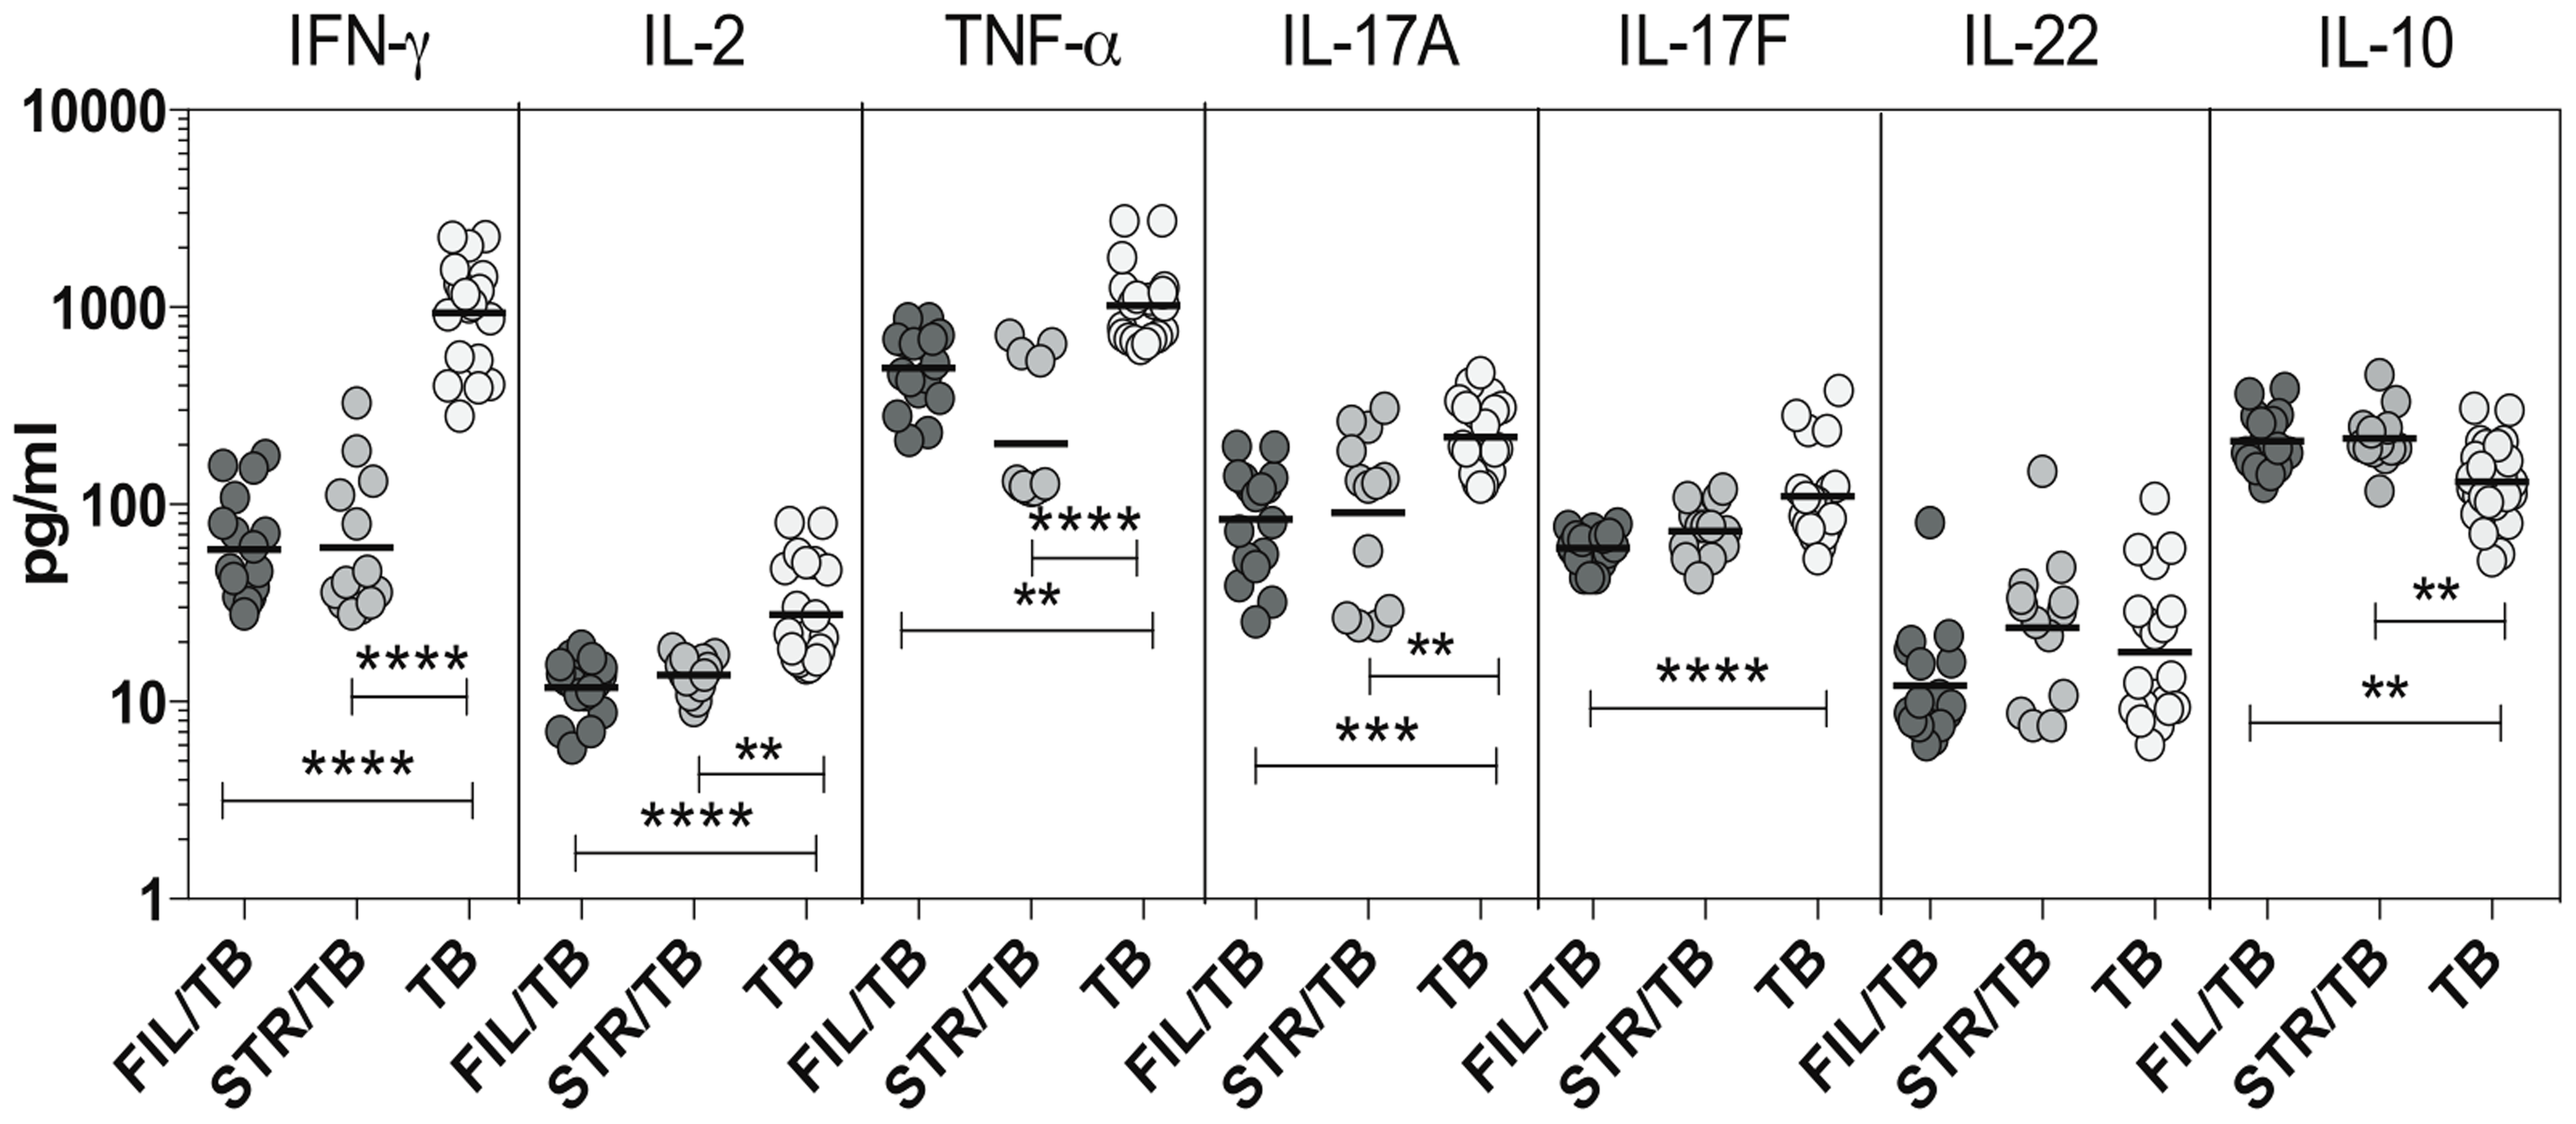 Helminth infections are associated with diminished plasma levels of Th1 and Th17 cytokines in active TB.